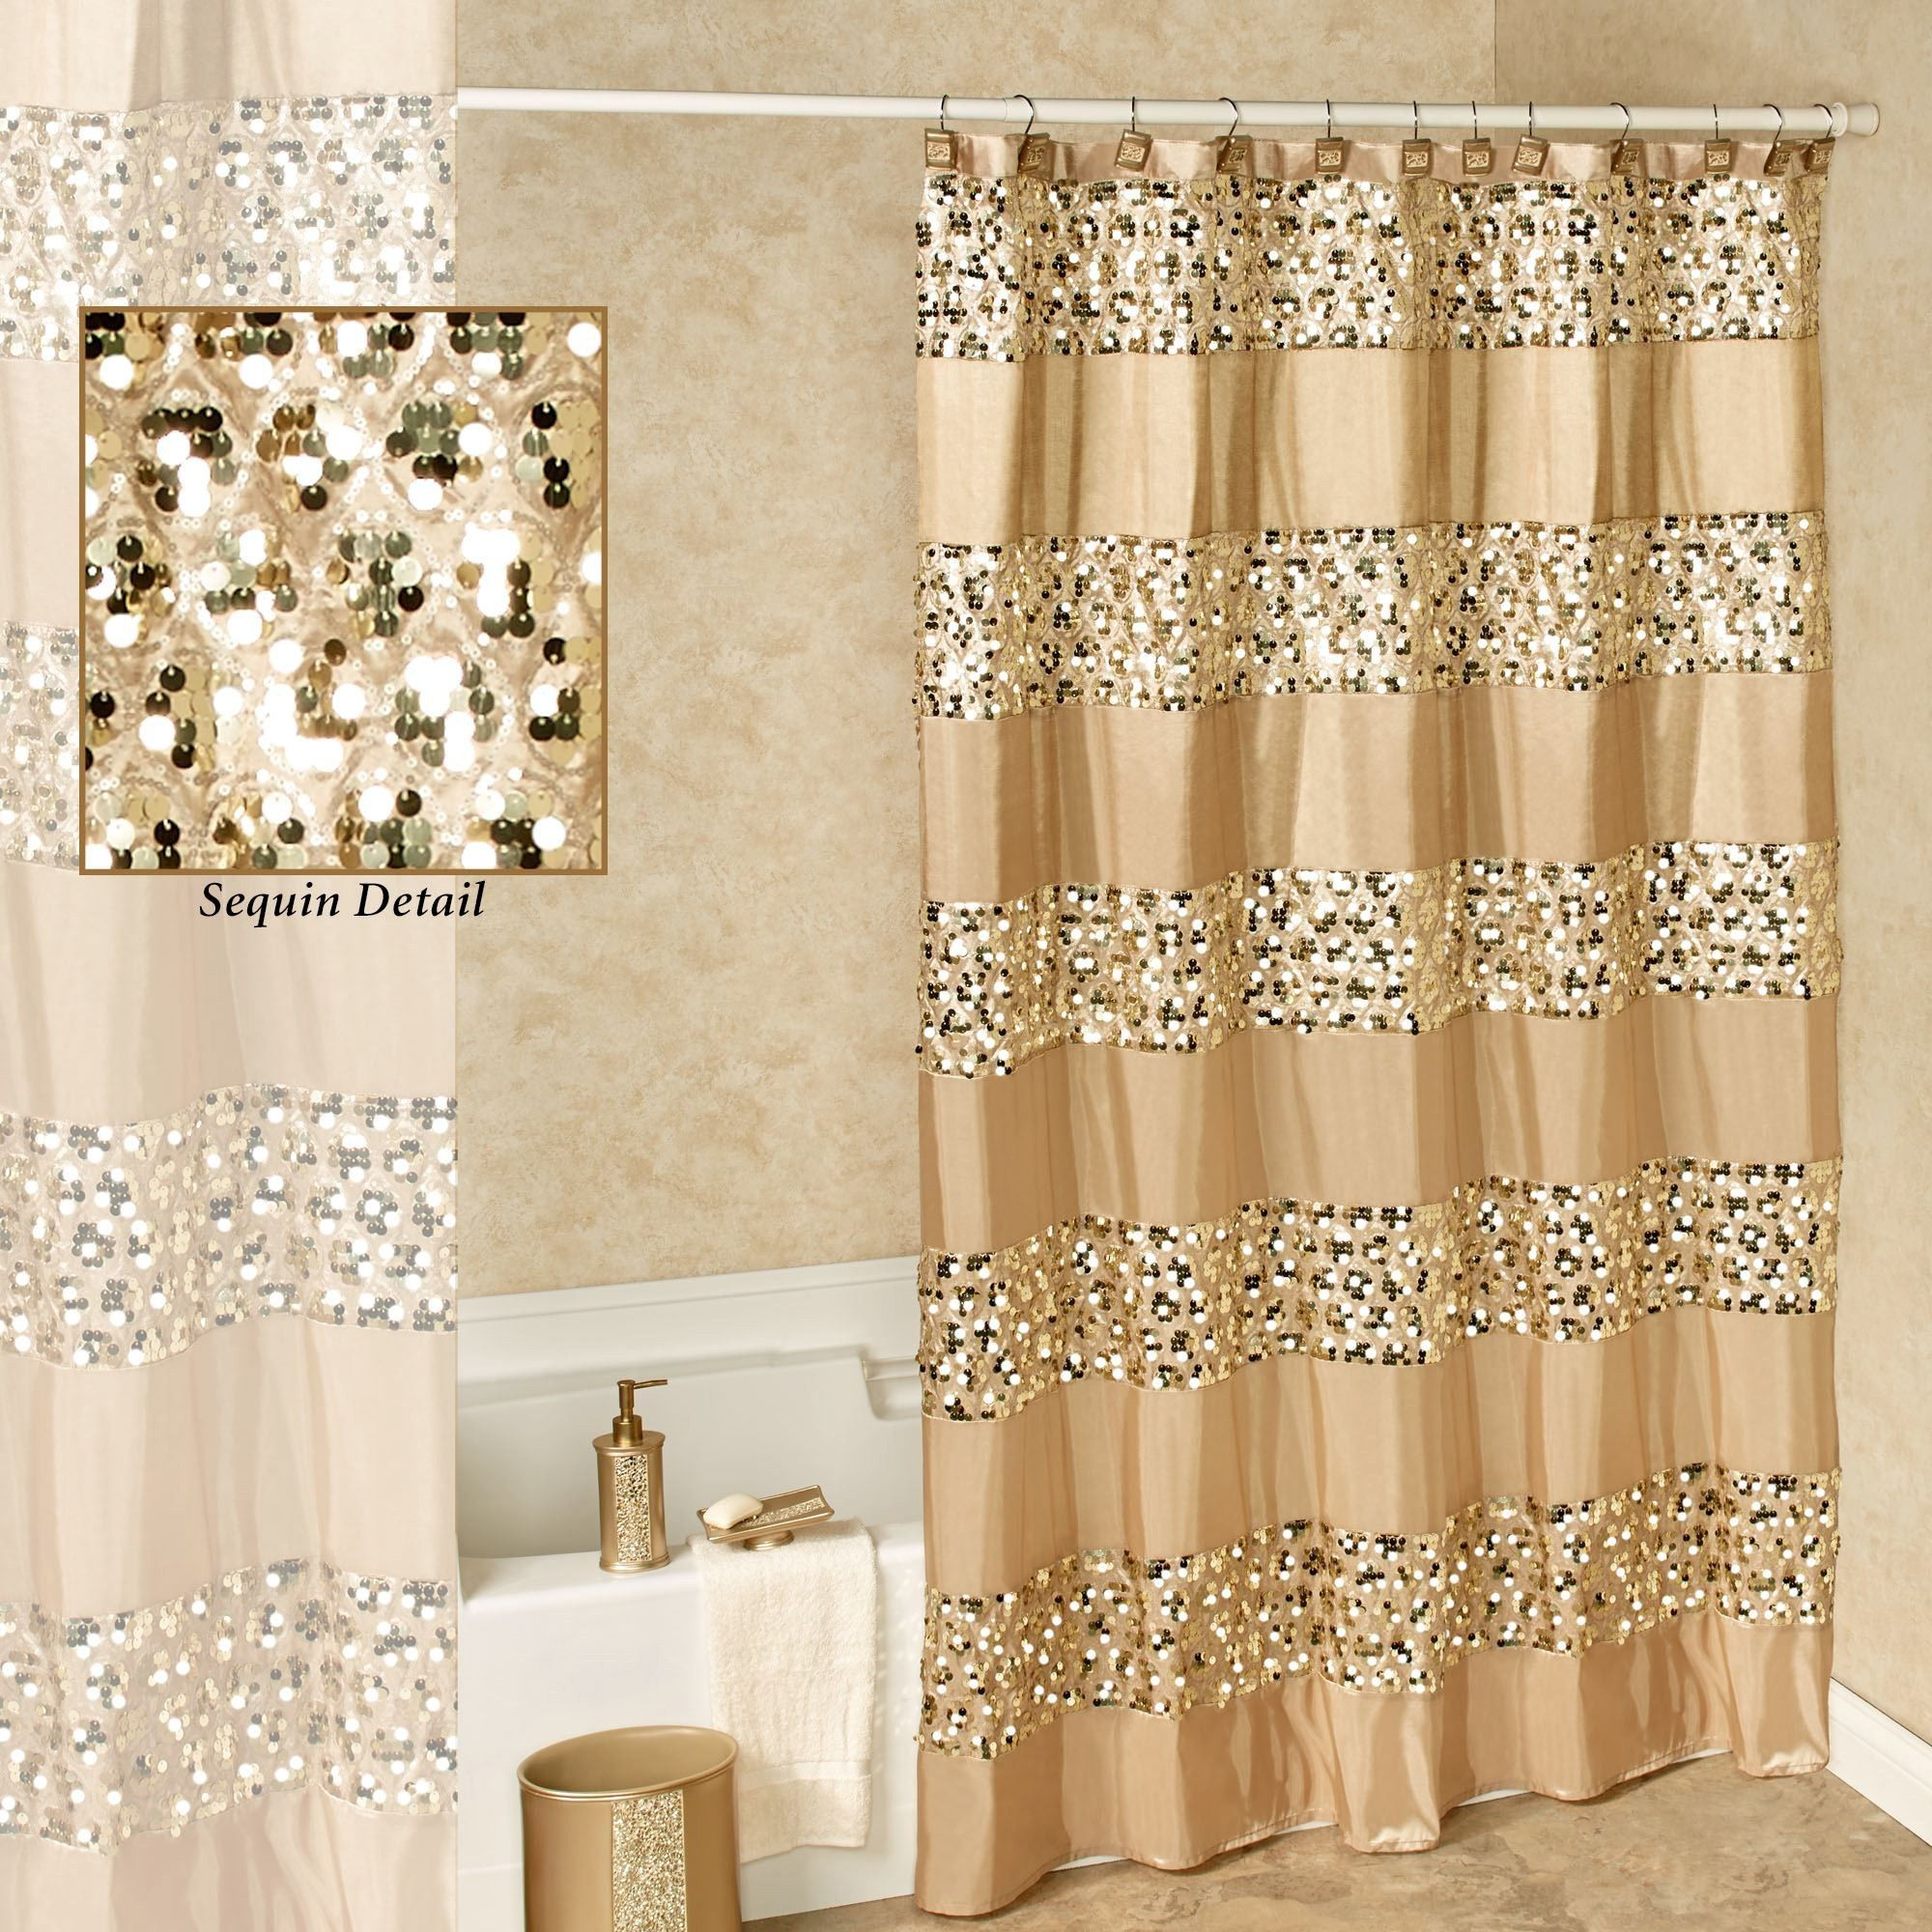 Awesome Gold Shower Curtain Hooks Check More At Homefurnitureone